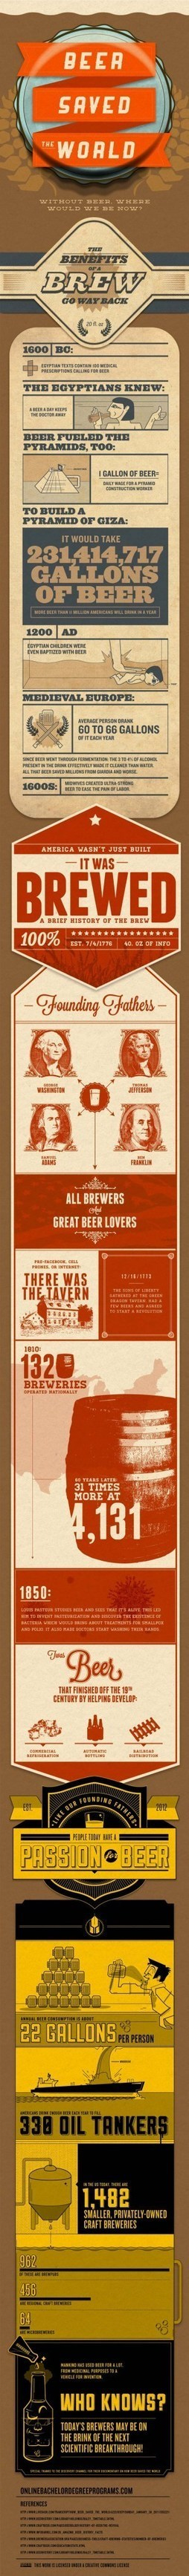 [INFOGRAPHIC] Beer Saved The World | INFOGRAPHICS | Scoop.it